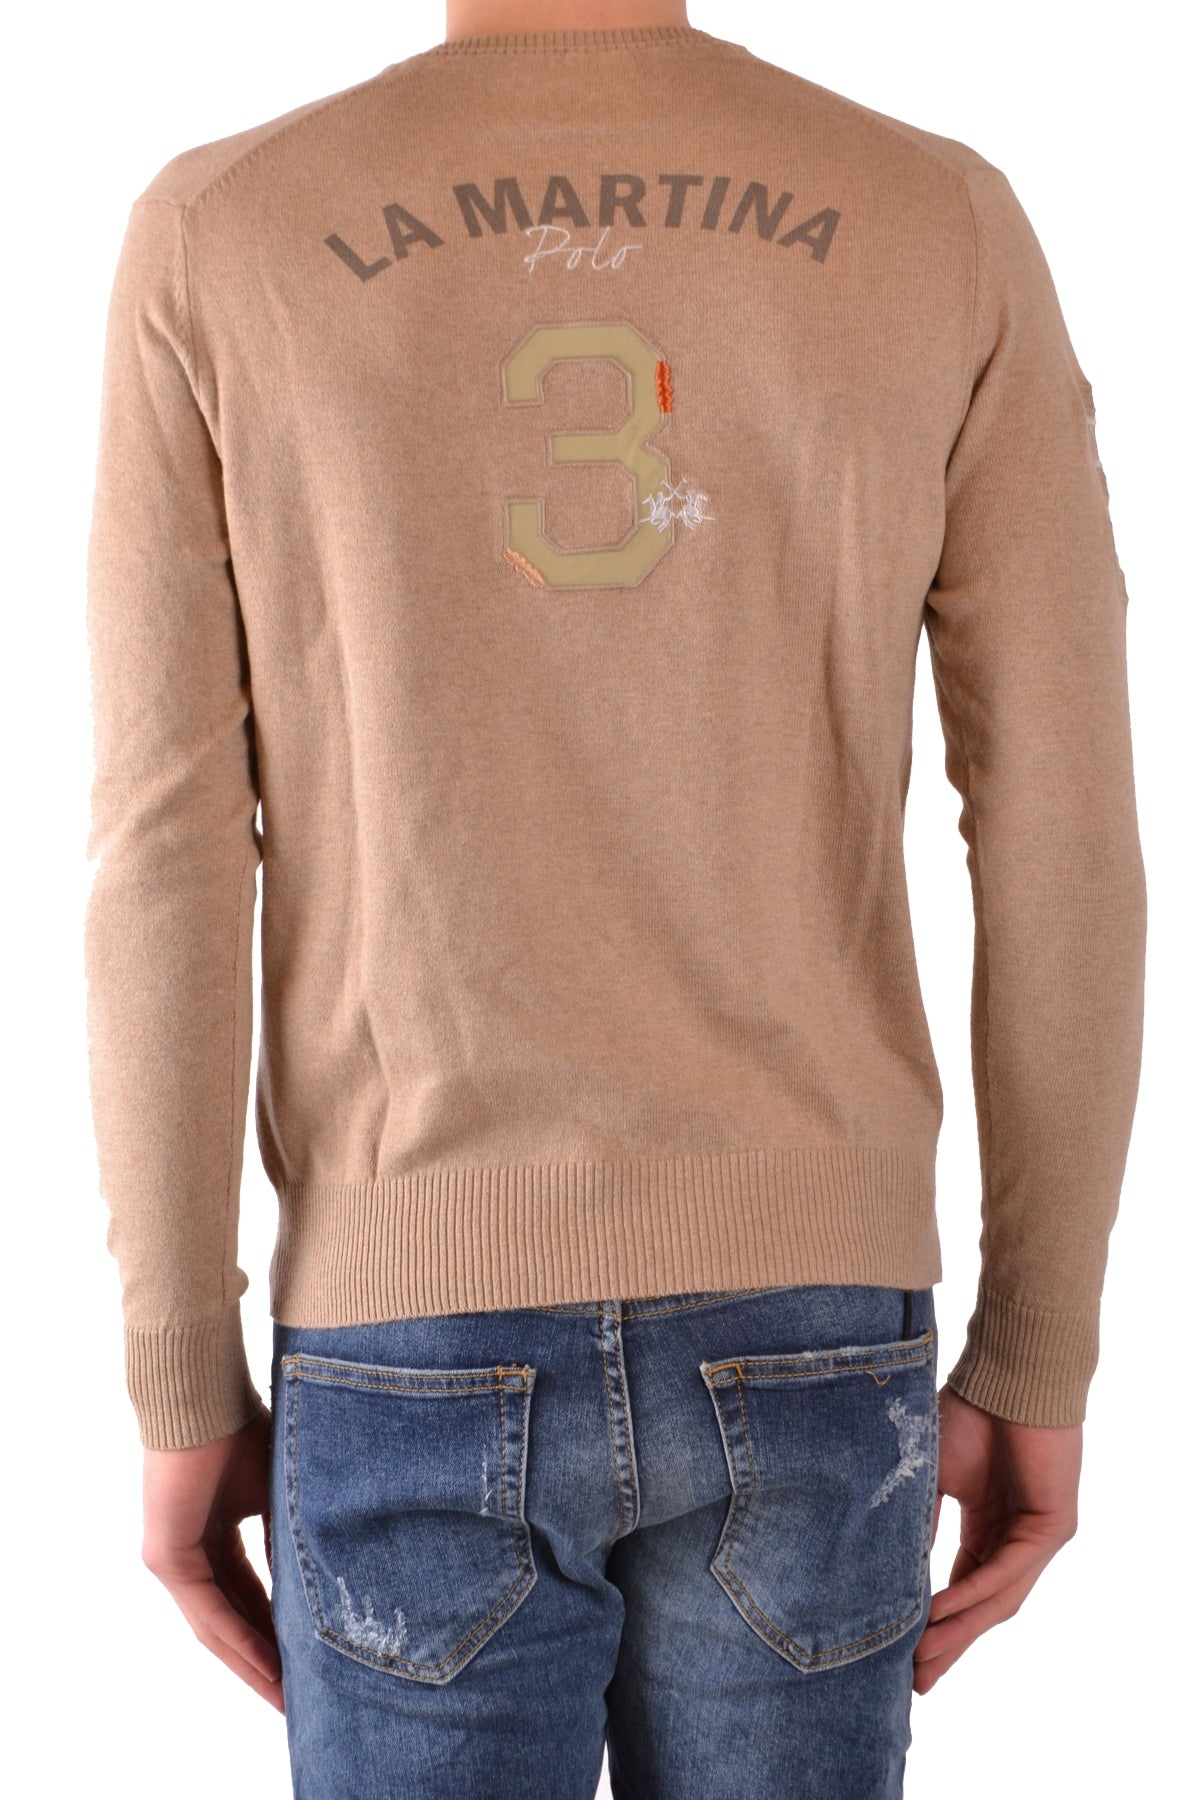 Sweater La Martina-Sweaters - MAN-Product Details Terms: New With LabelMain Color: MarrónGender: ManMade In: MauritiusManufacturer Part Number: Ams015Size: IntSeason: Fall / WinterClothing Type: Sweater And CardiganComposition: Cashmere 10%, Cotton 90%-Keyomi-Sook